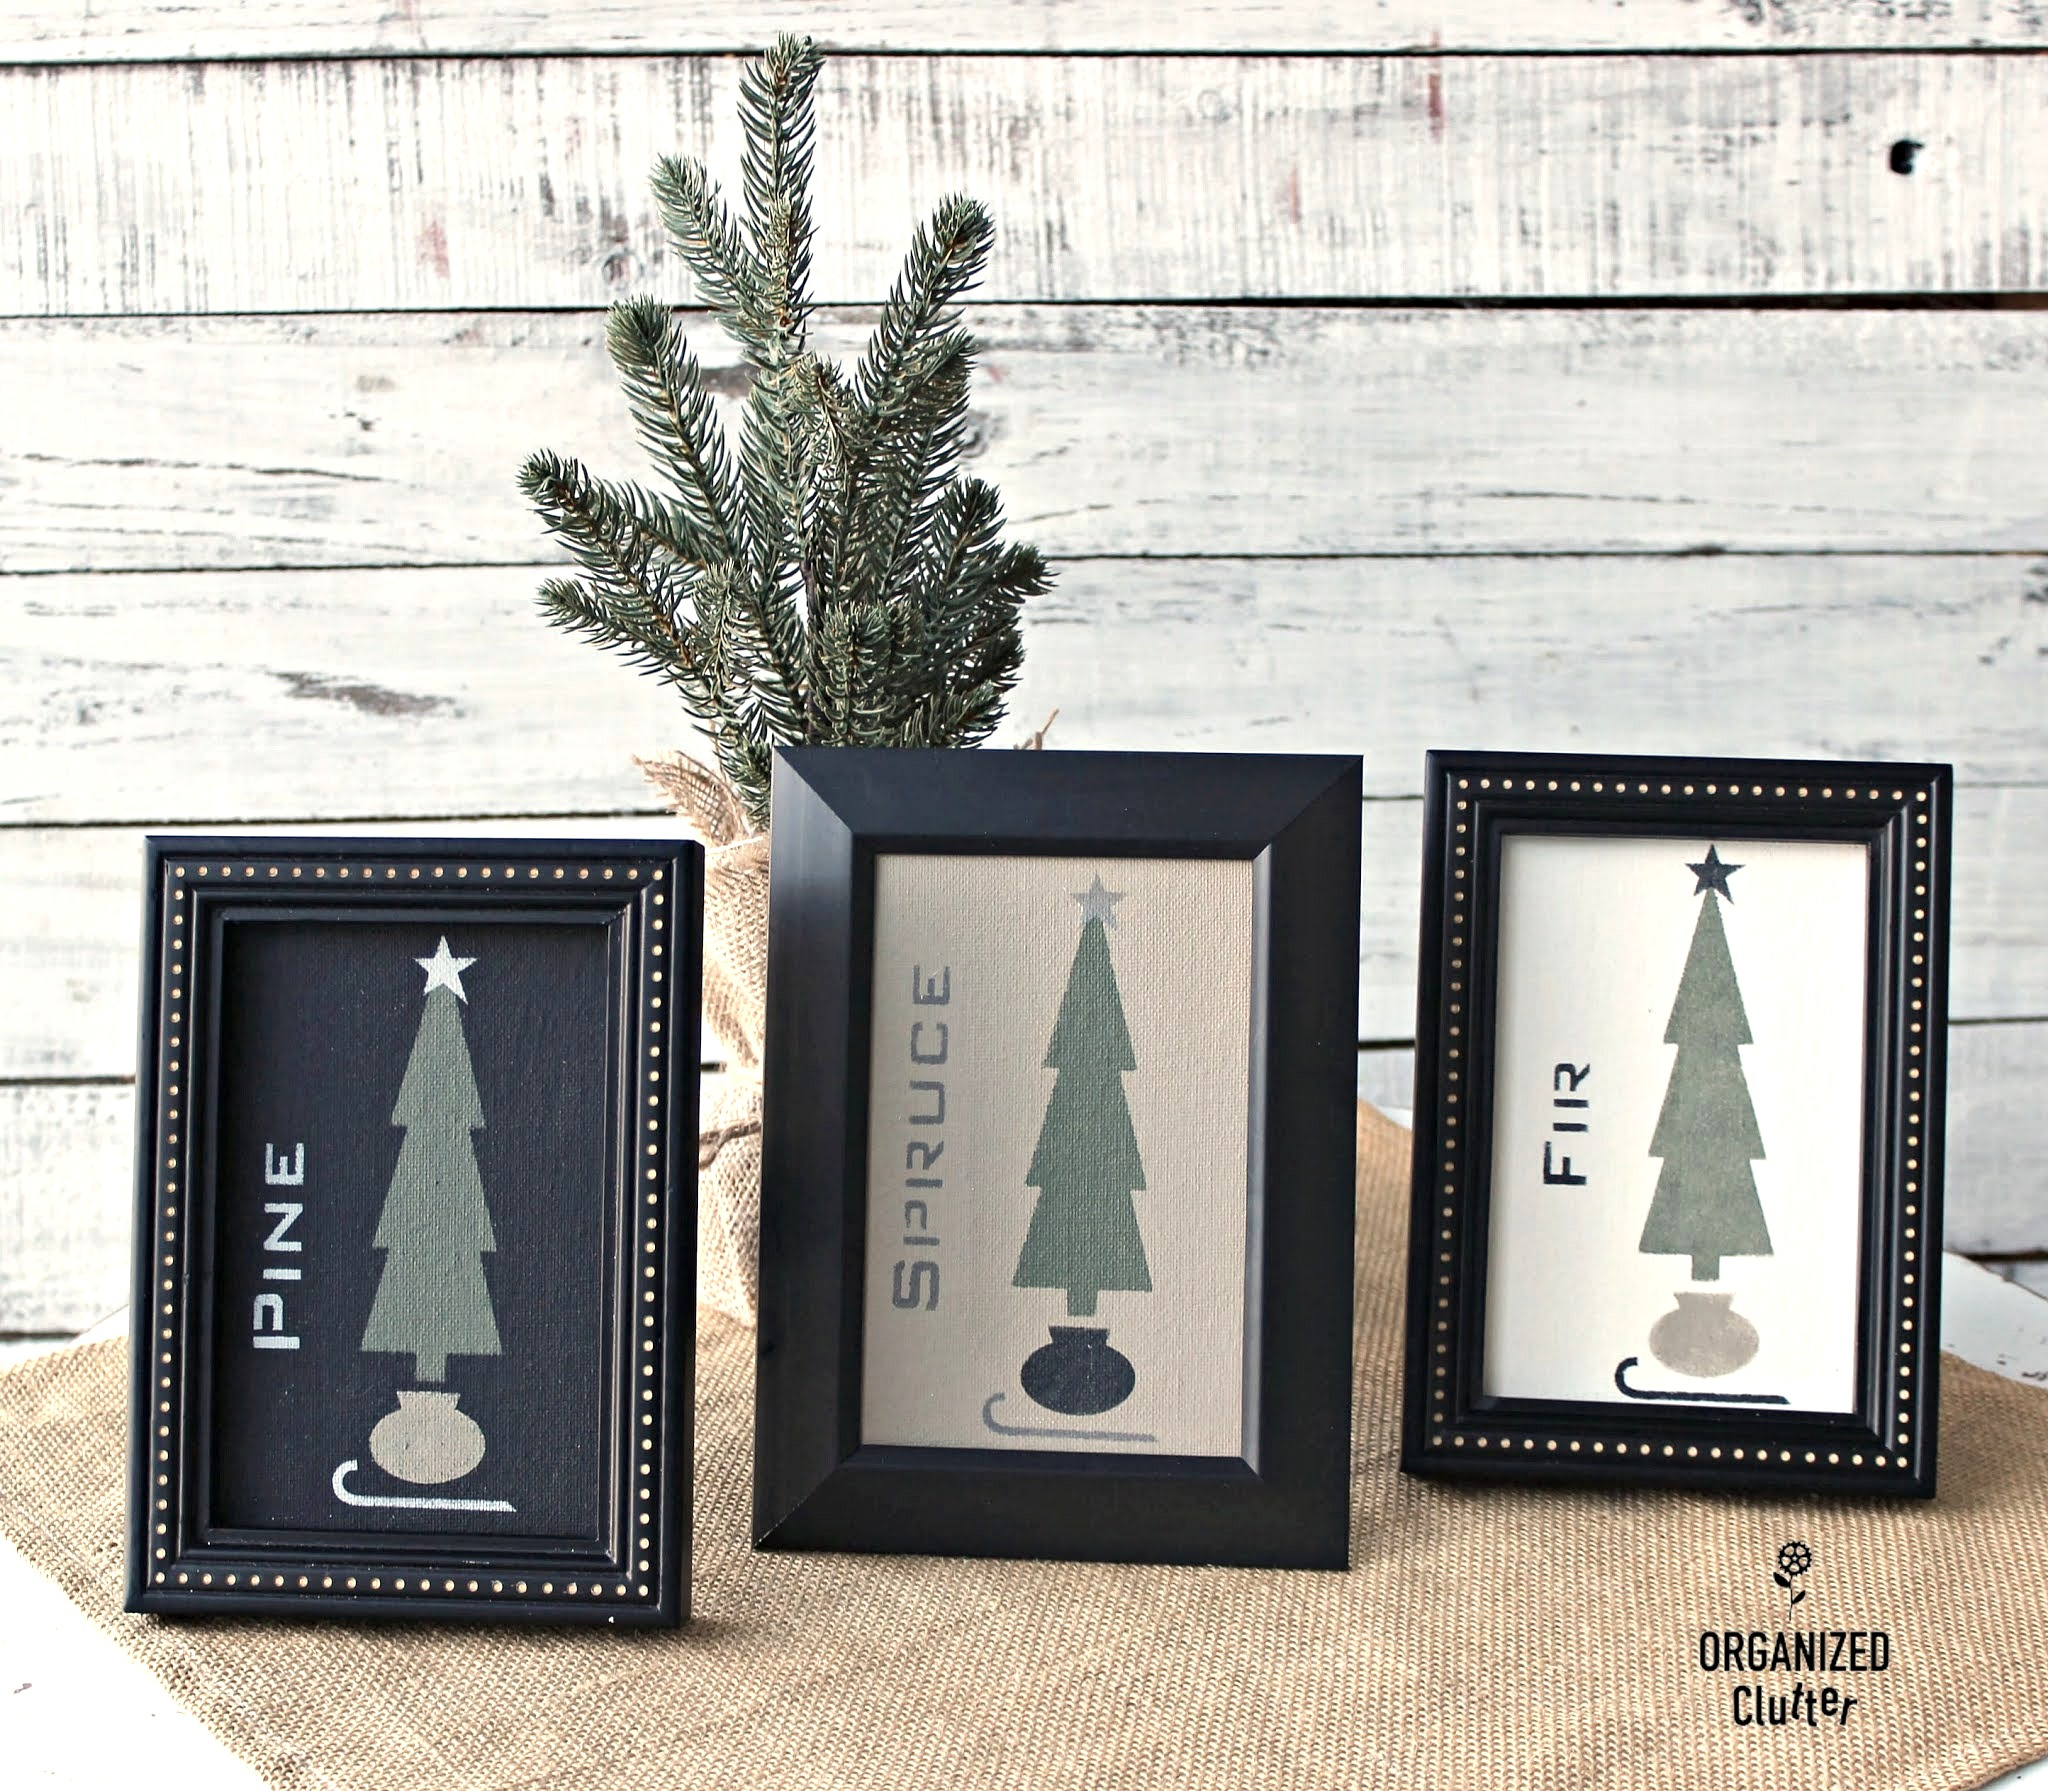 Christmas tree stenciled art by Organized Clutter, featured on DIY Salvaged Junk Projects 558 on Funky Junk!